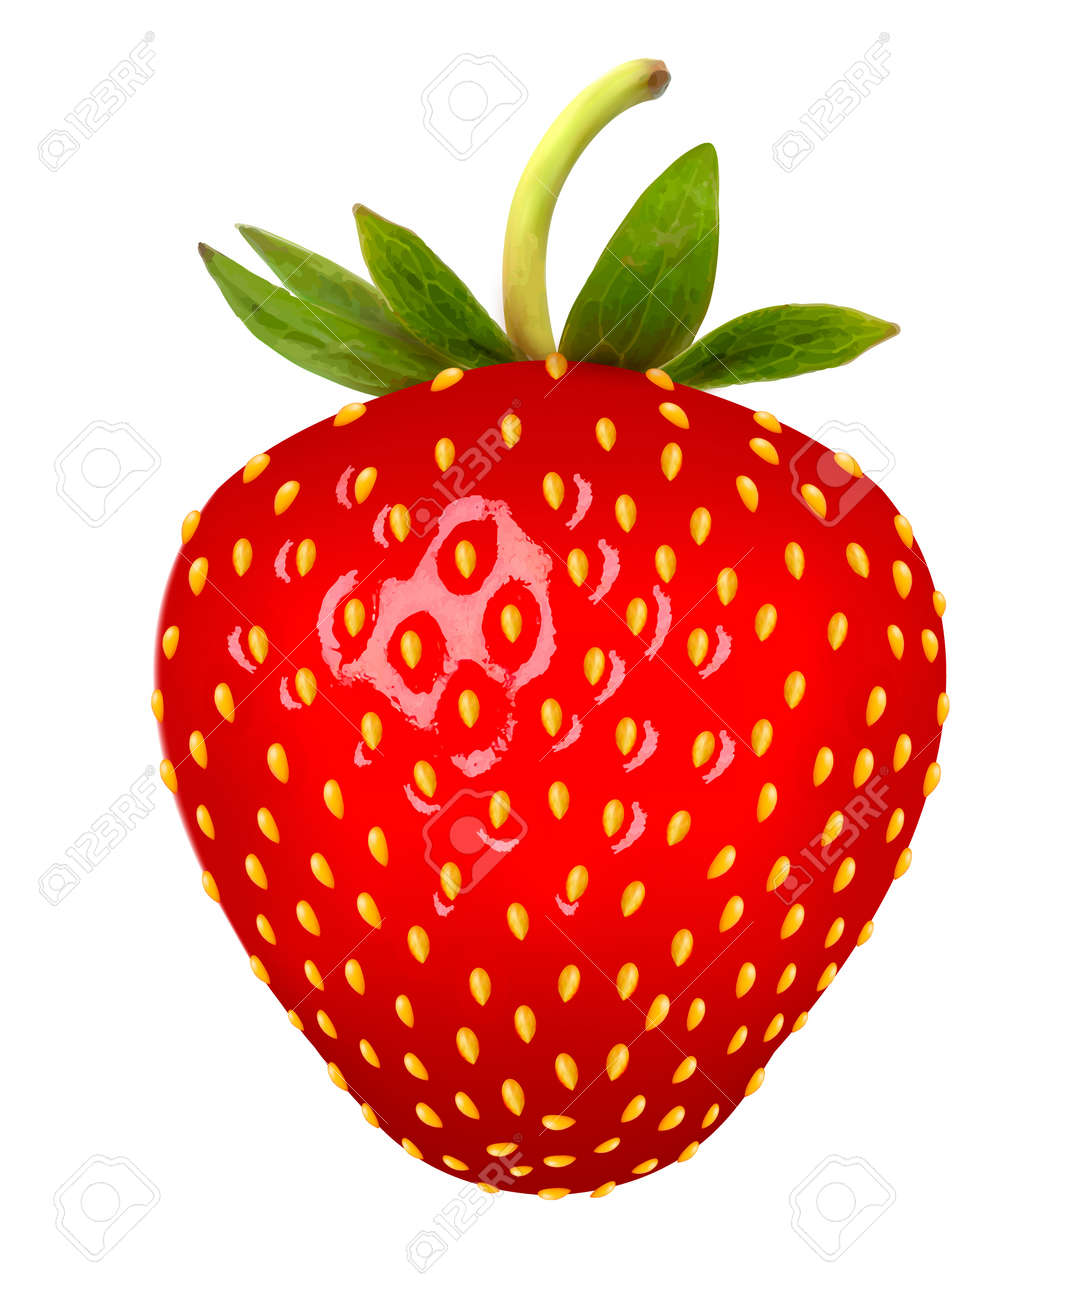 strawberry vector royalty free cliparts vectors and stock rh 123rf com strawberry vector free strawberry vector background